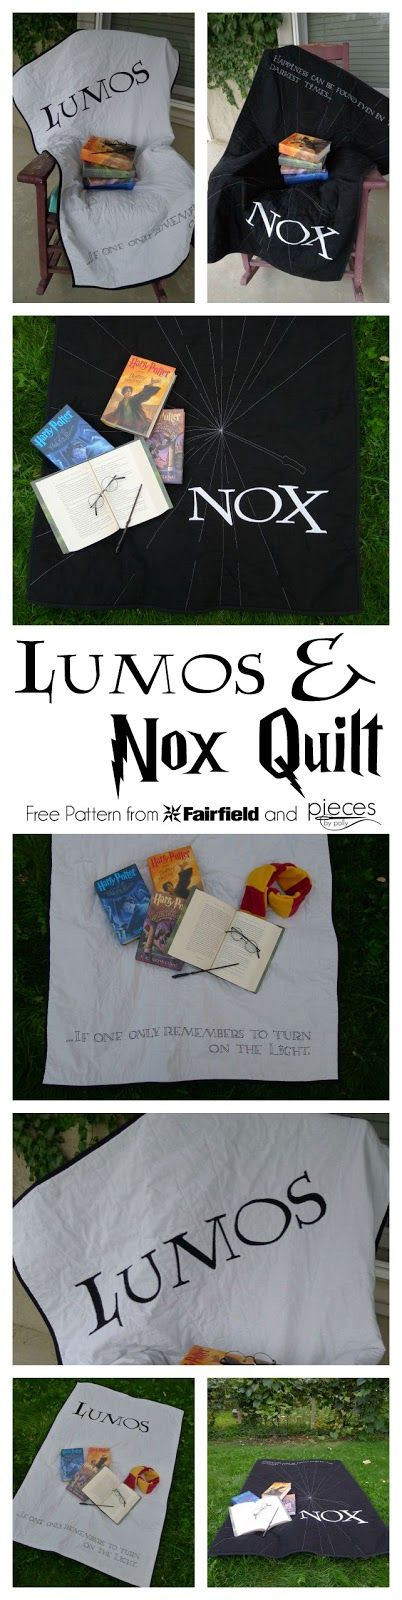 Pieces by Polly: Lumos and Nox Quilt Pattern - Harry Potter Inspired Quilt